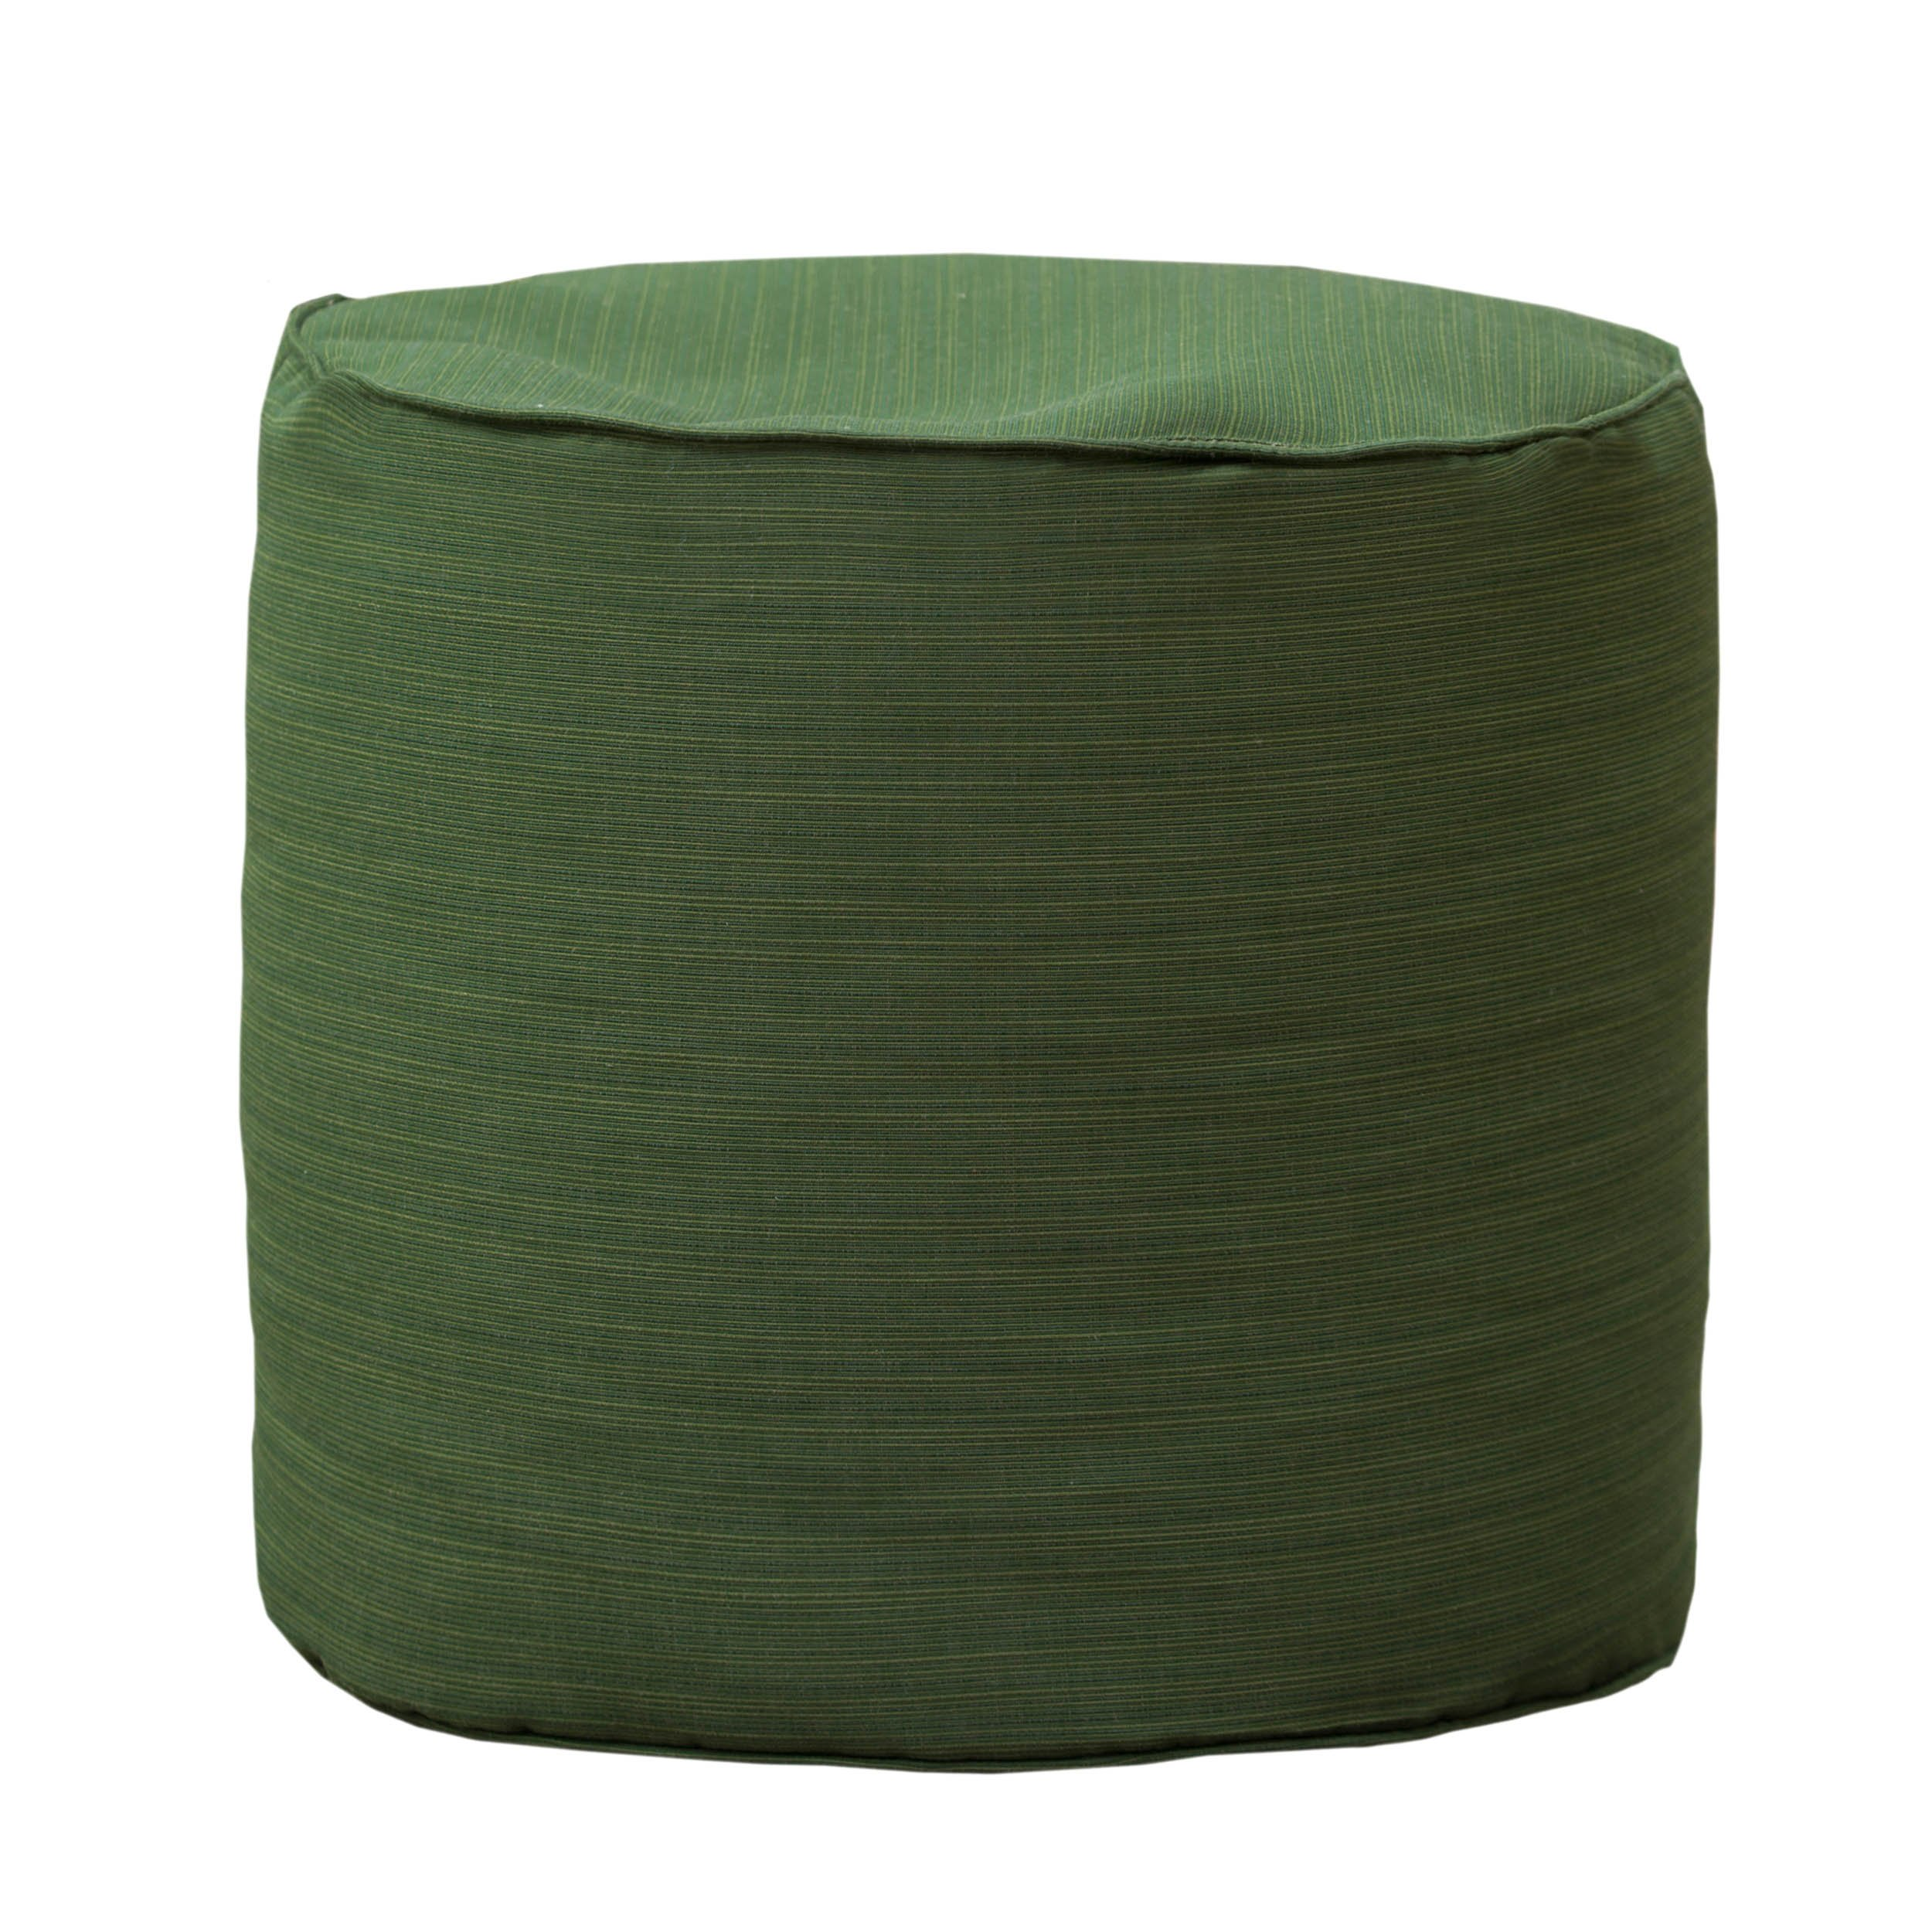 Gold Medal Bean Bags Outdoor/Indoor Sunbrella Weather Resistant Ottoman, Dupione Palm